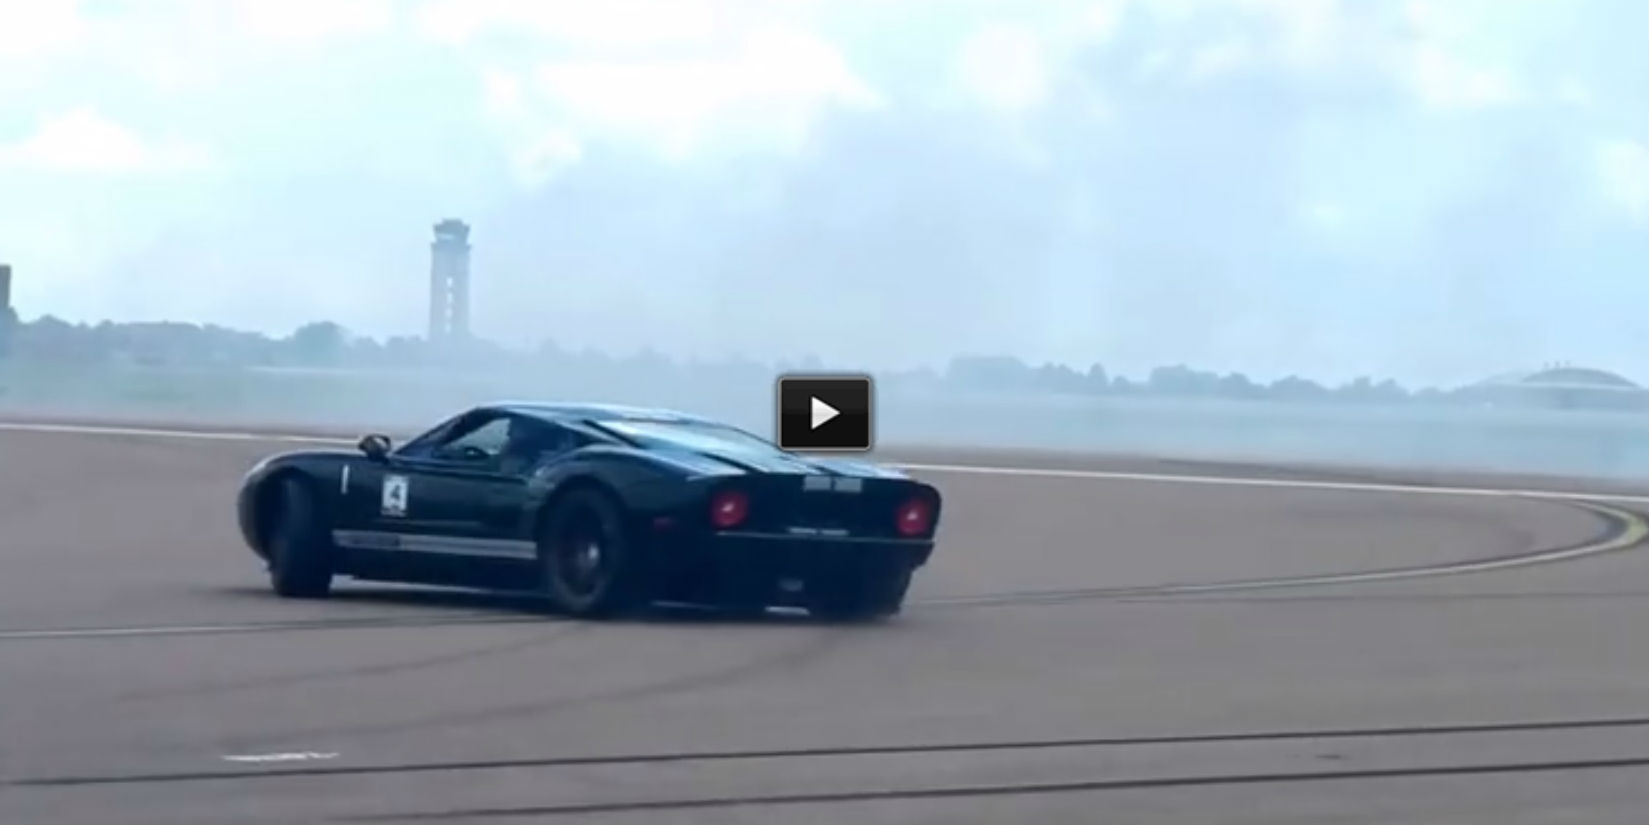 Ford Gt Drift Fails To Keep Up With A Nissan Drift Car At Pikes Peak